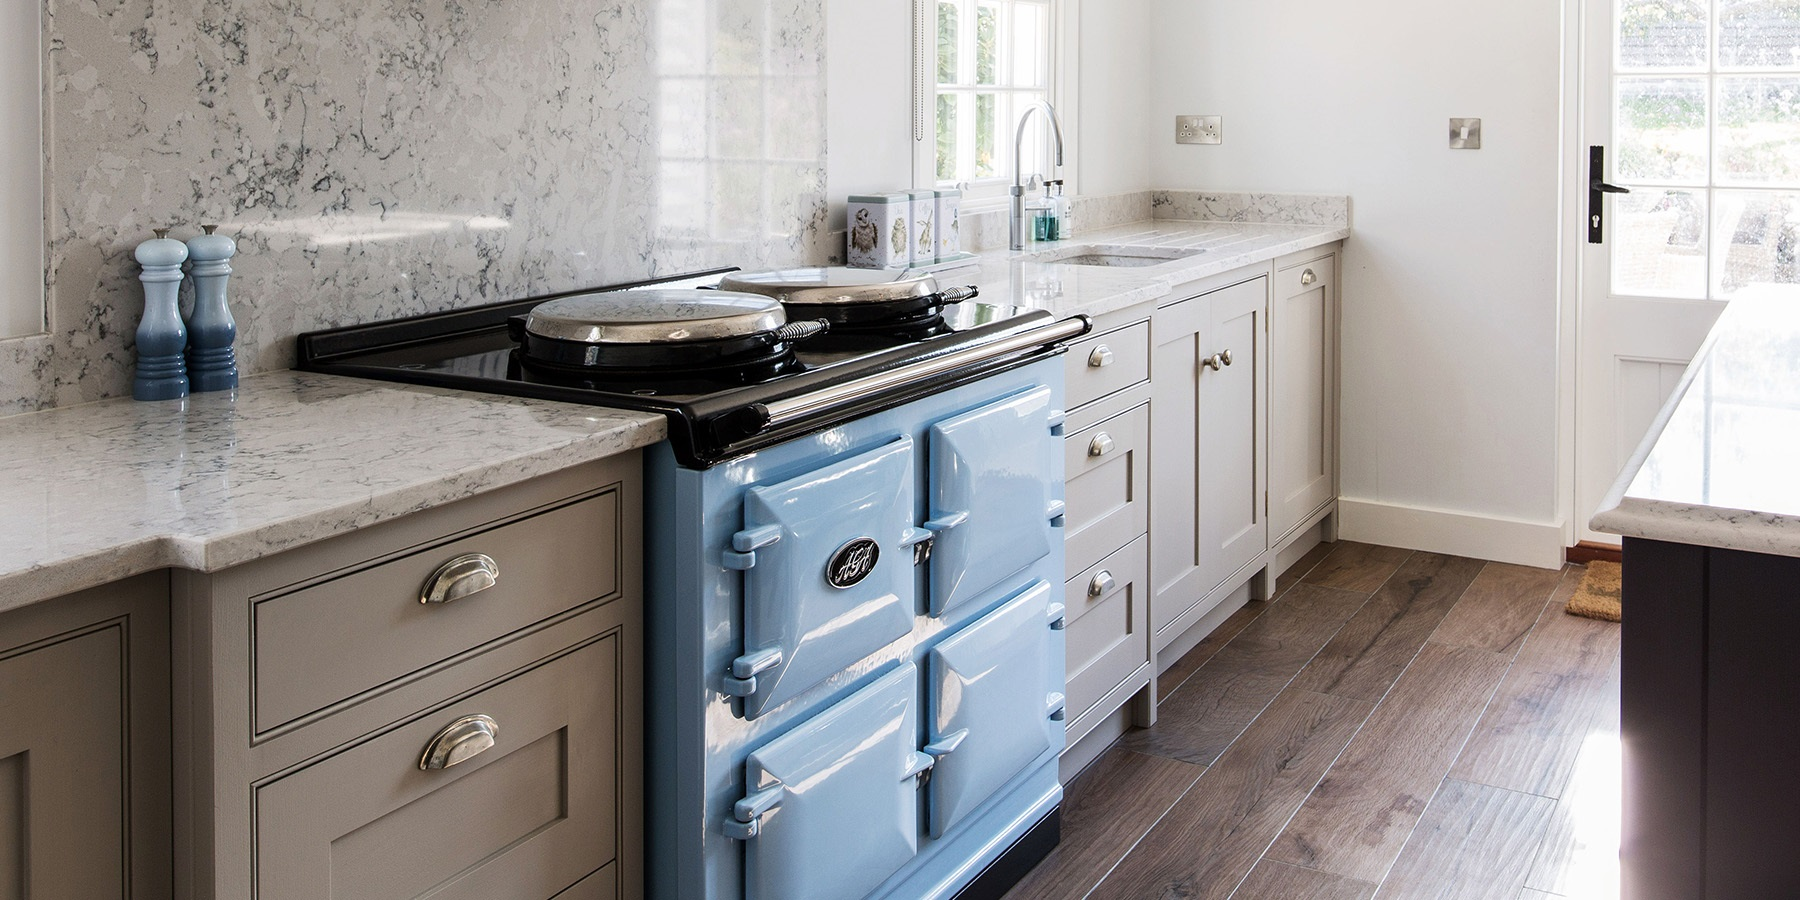 Country Cottage Style Shaker Kitchen With AGA - Bespoke Wellsdown kitchen furniture with classic AGA range in Blue.